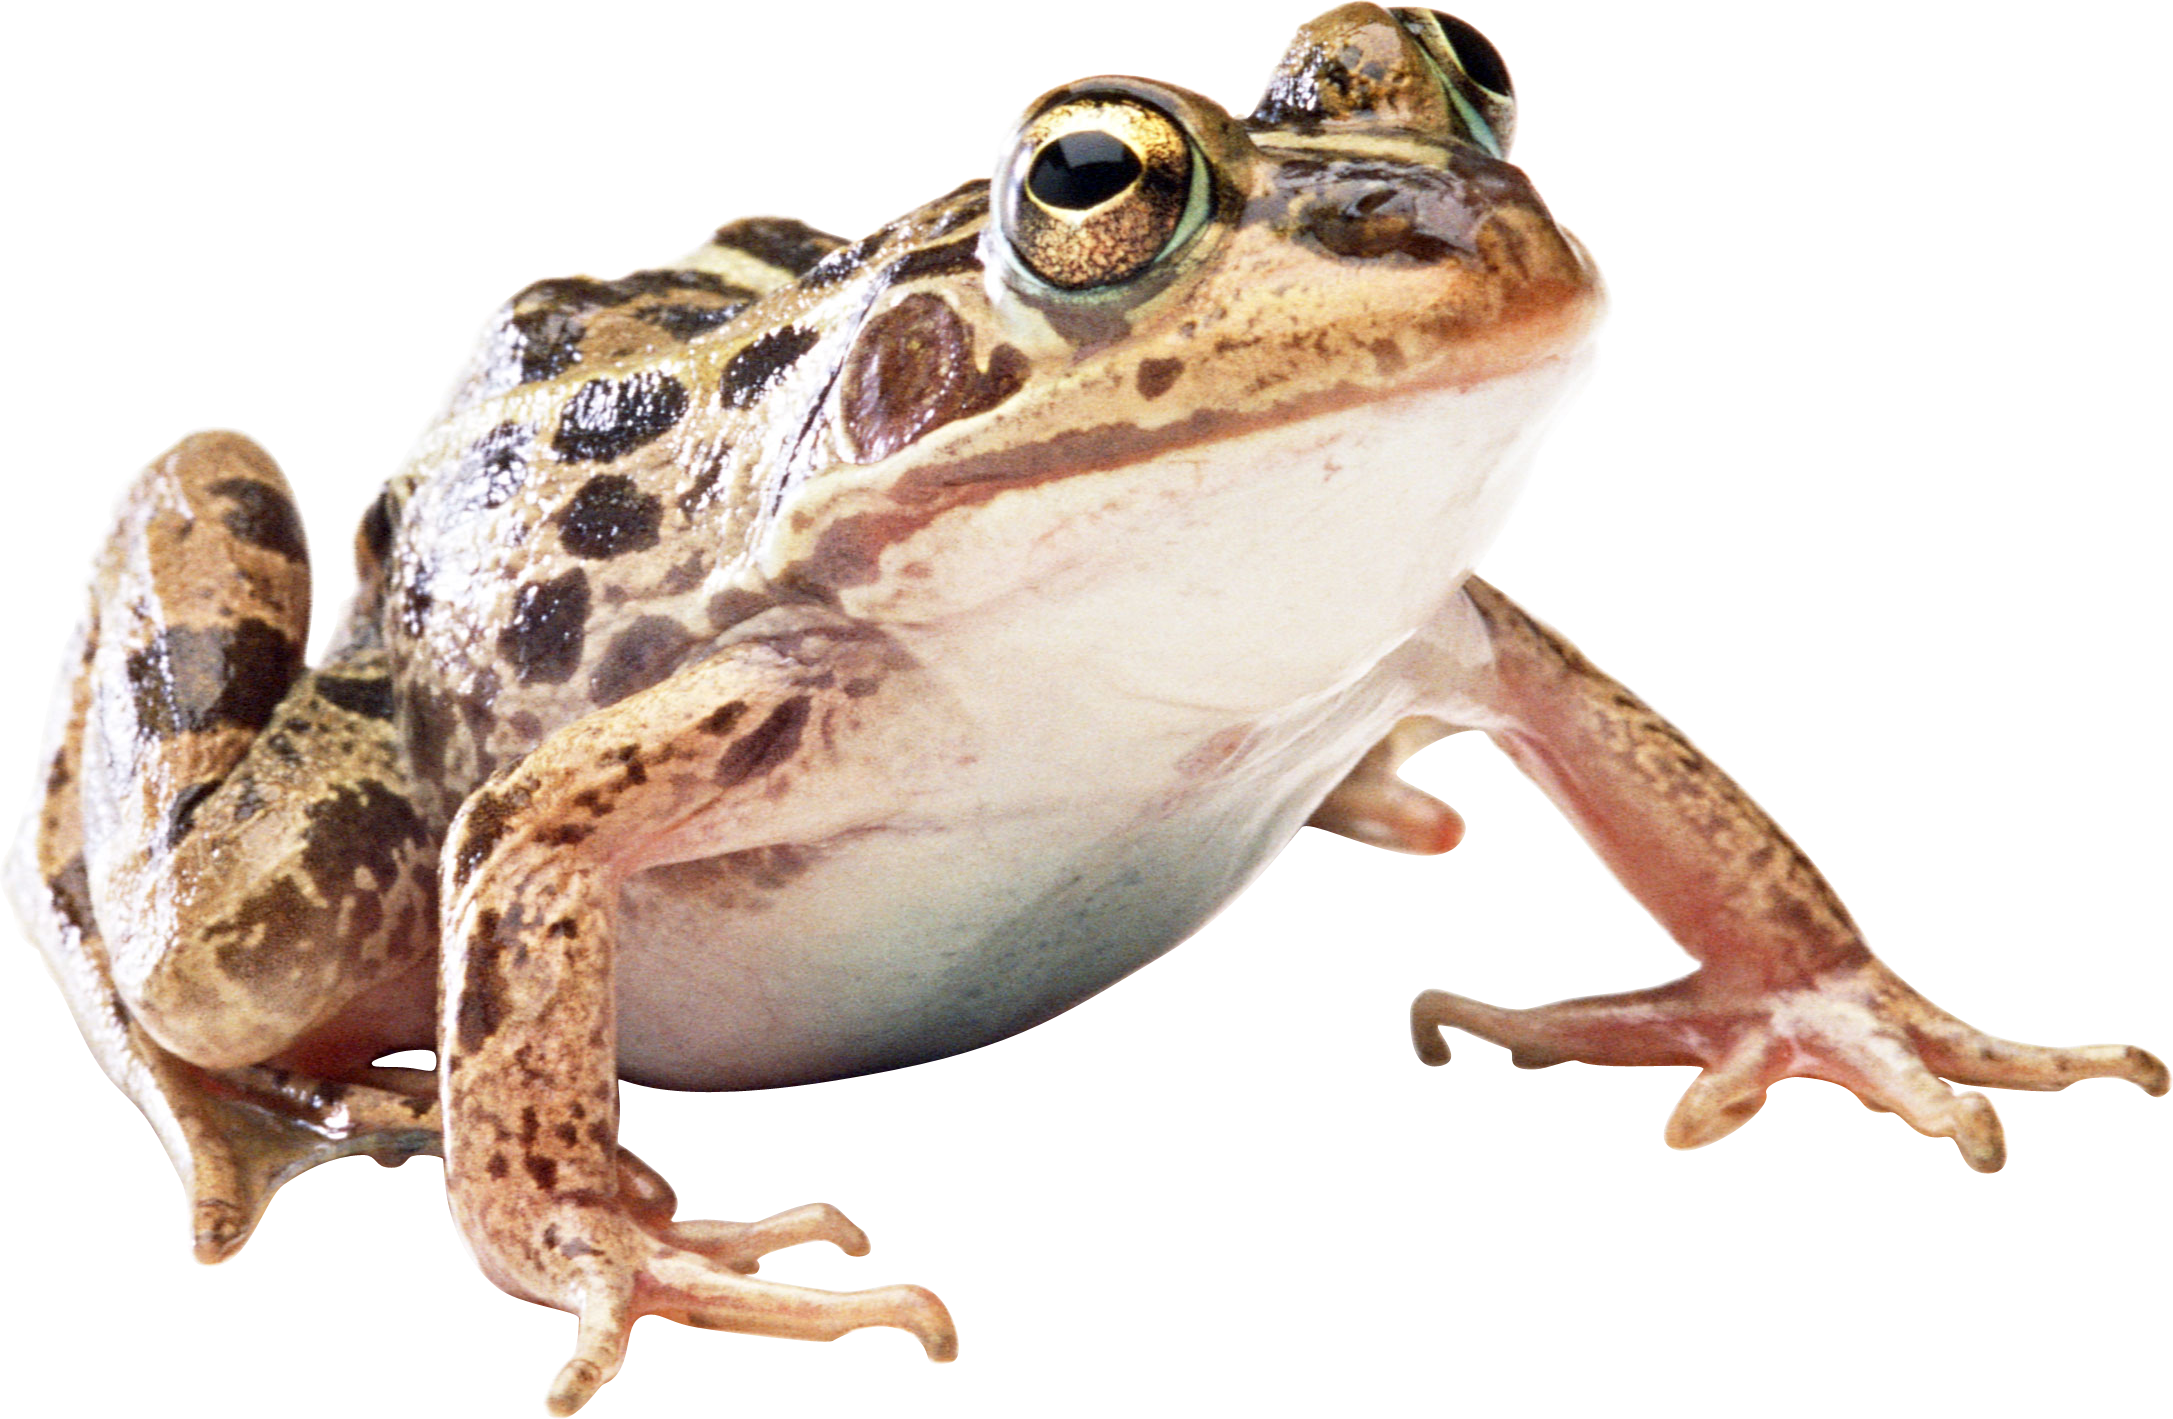 Wednesday frog png. Download image sb b